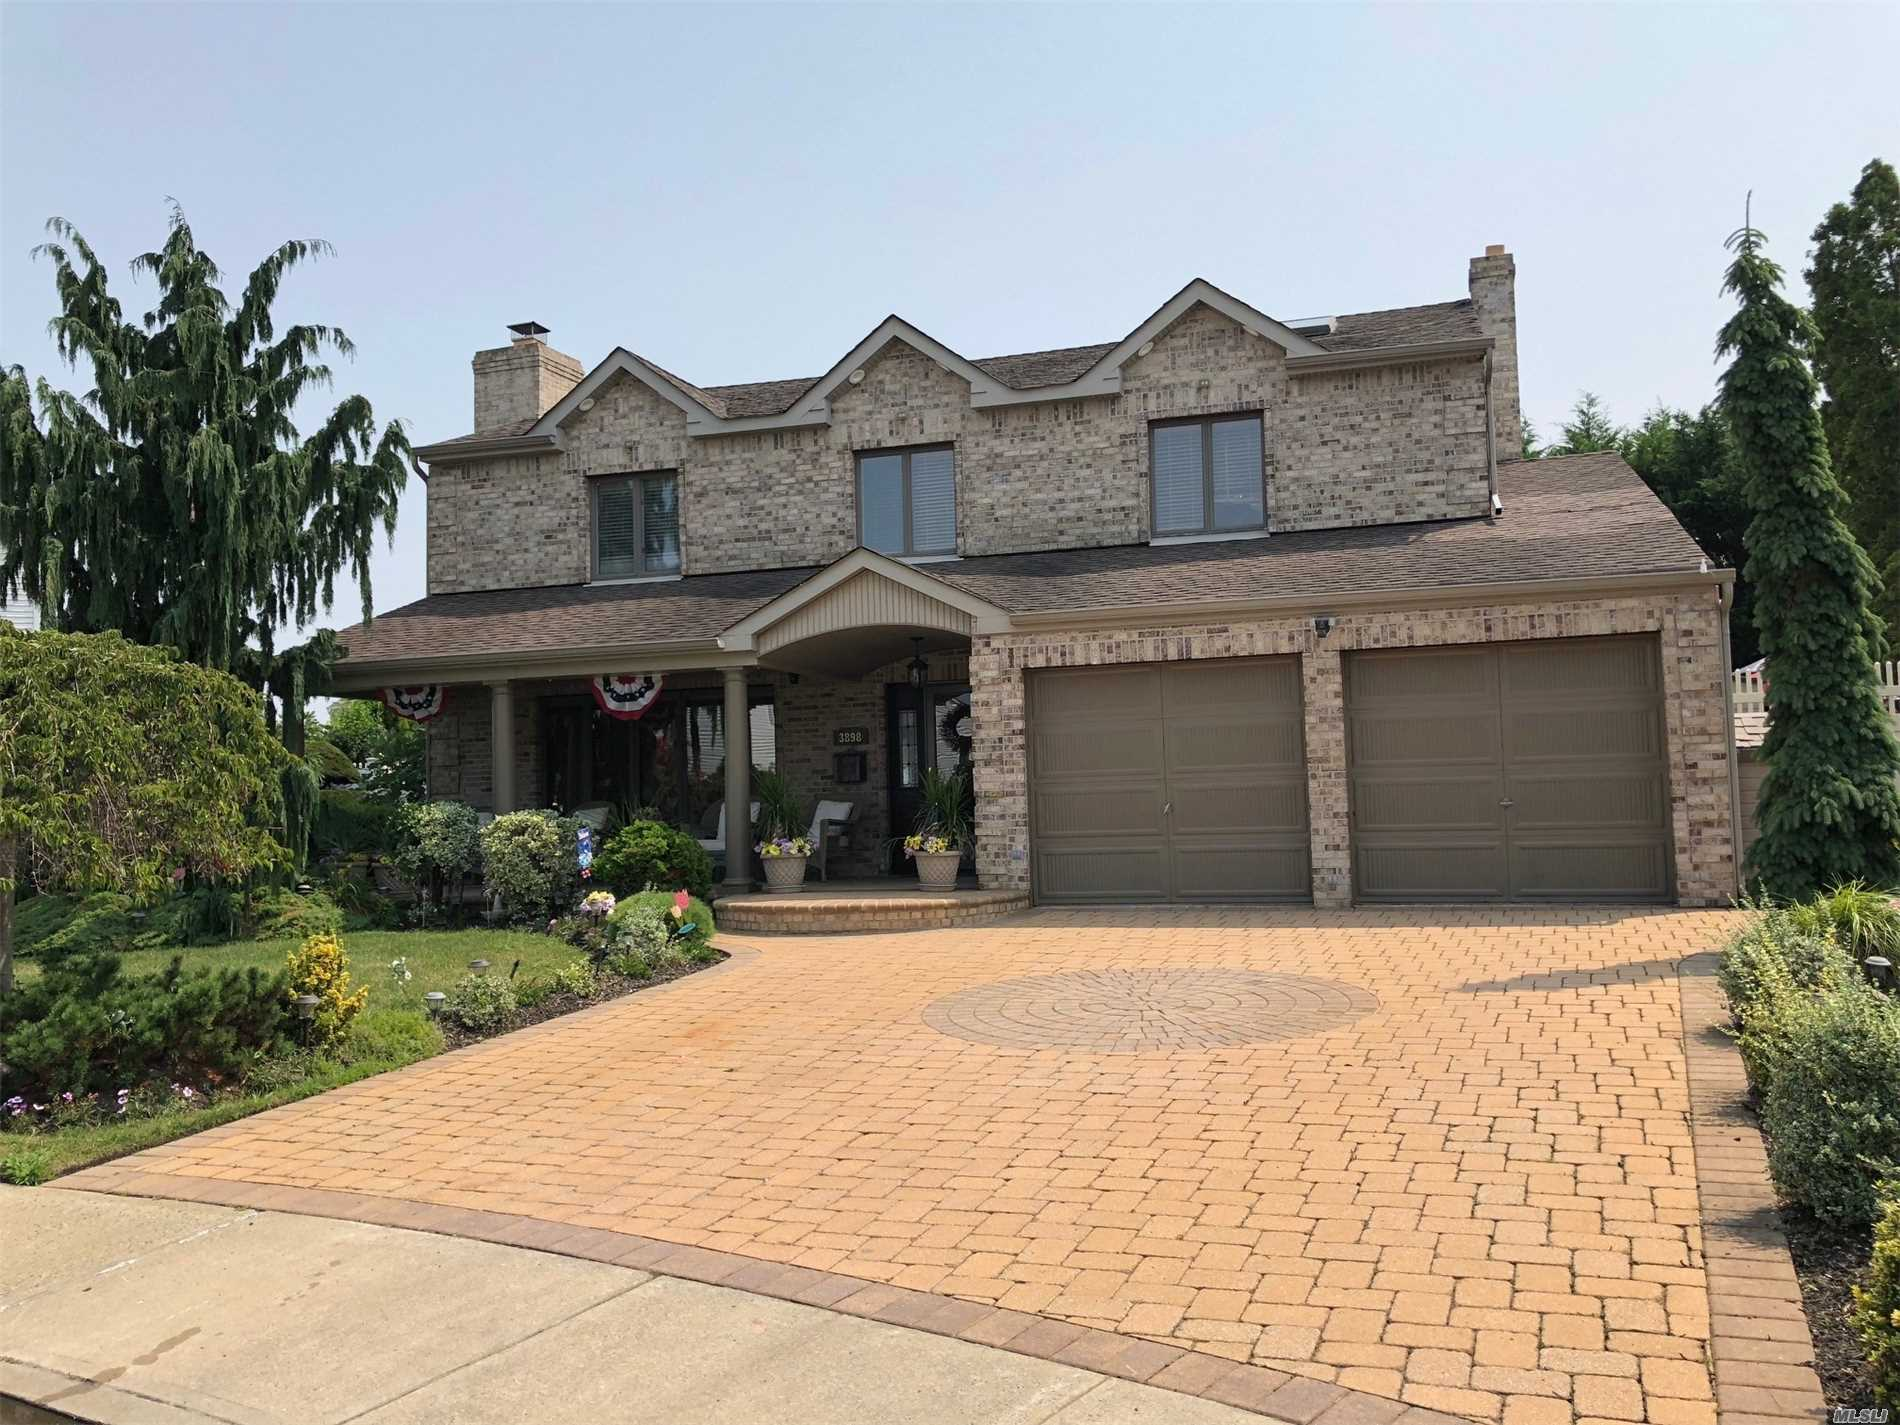 Magnificent Cul De Sac Colonial Gem! Upscale Main Level With Renovated Gourmet Kitchen And Baths. Backyard Paradise Ig Pool With Waterfall. Front Porch Is Picture Perfect & Fit For A King! One Of The Largest Lots In The Area.